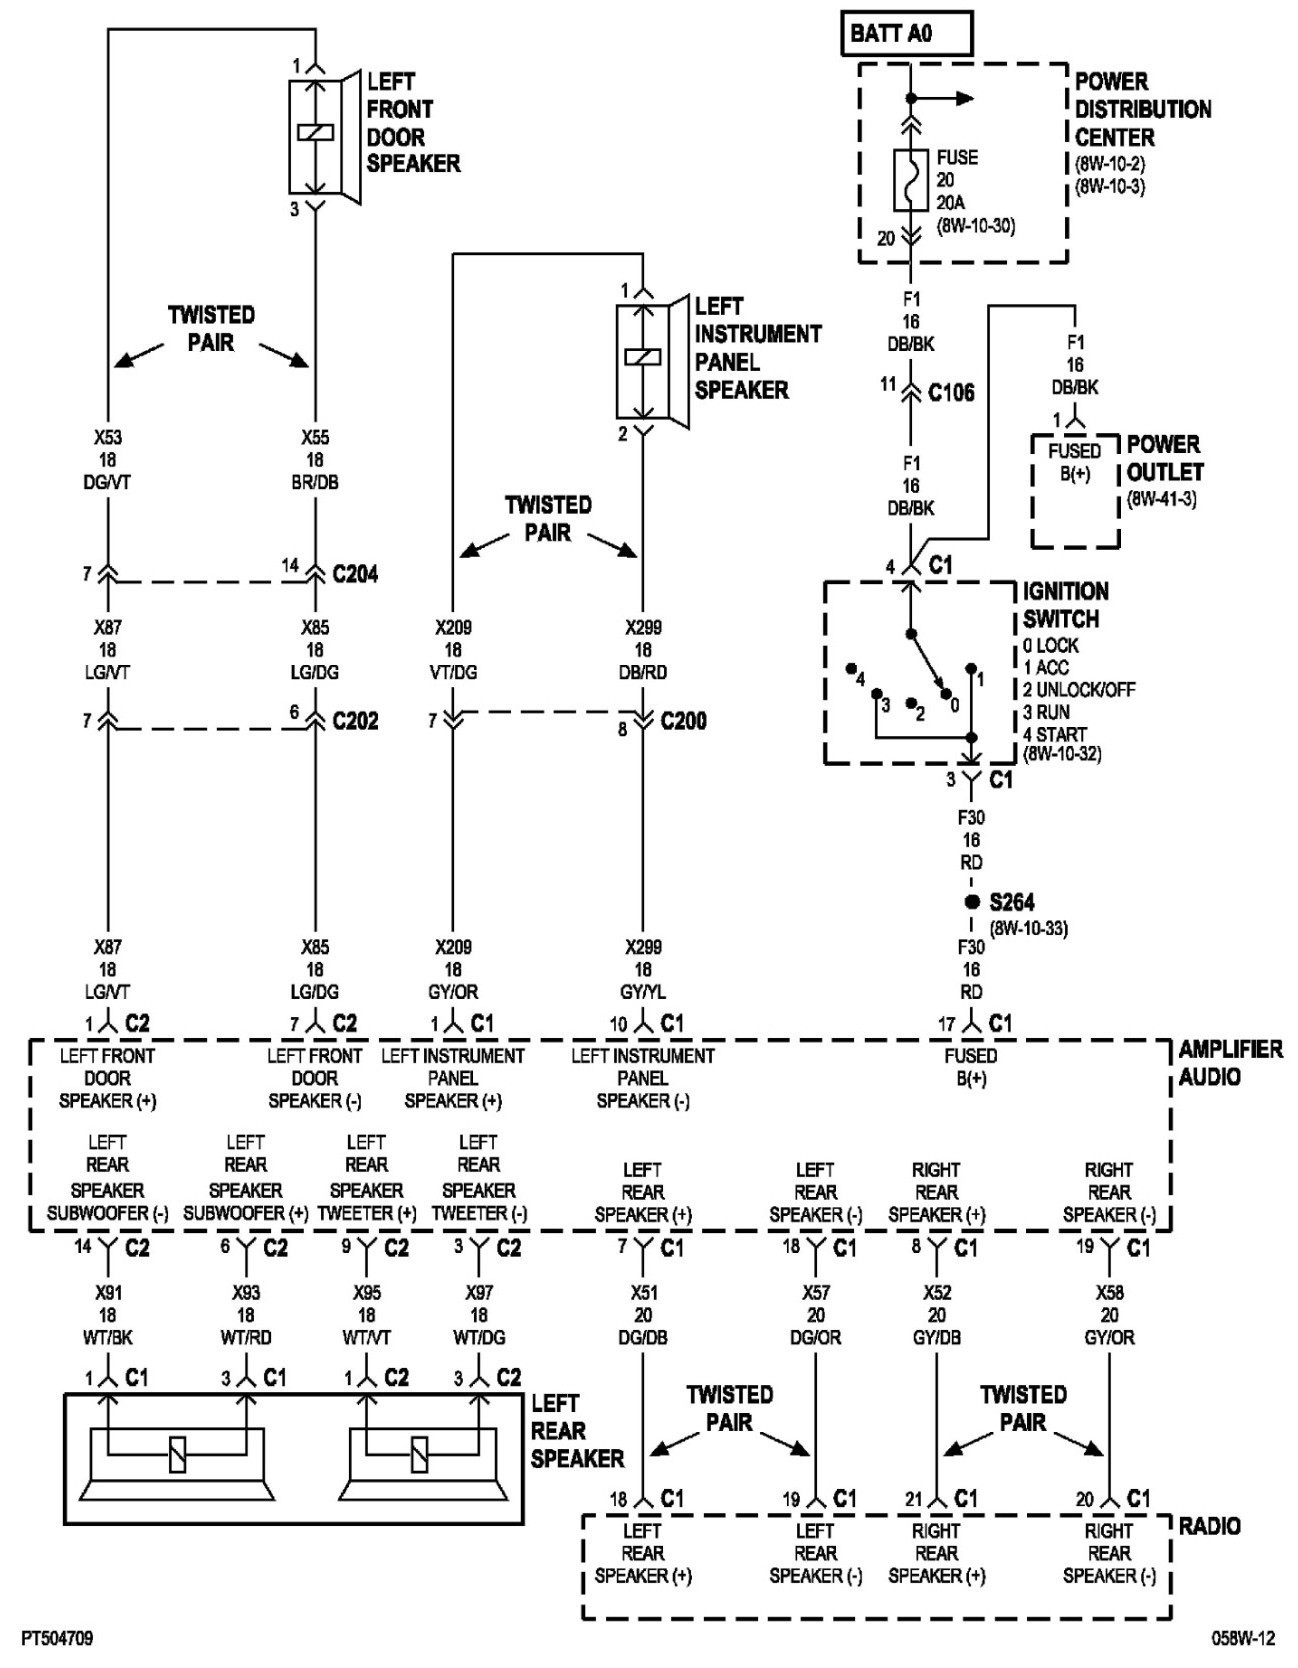 2005 Chrysler town and Country Instrument Cluster Wiring Diagrams Supercars Gallery Chrysler Radio Wiring Diagrams Of 2005 Chrysler town and Country Instrument Cluster Wiring Diagrams